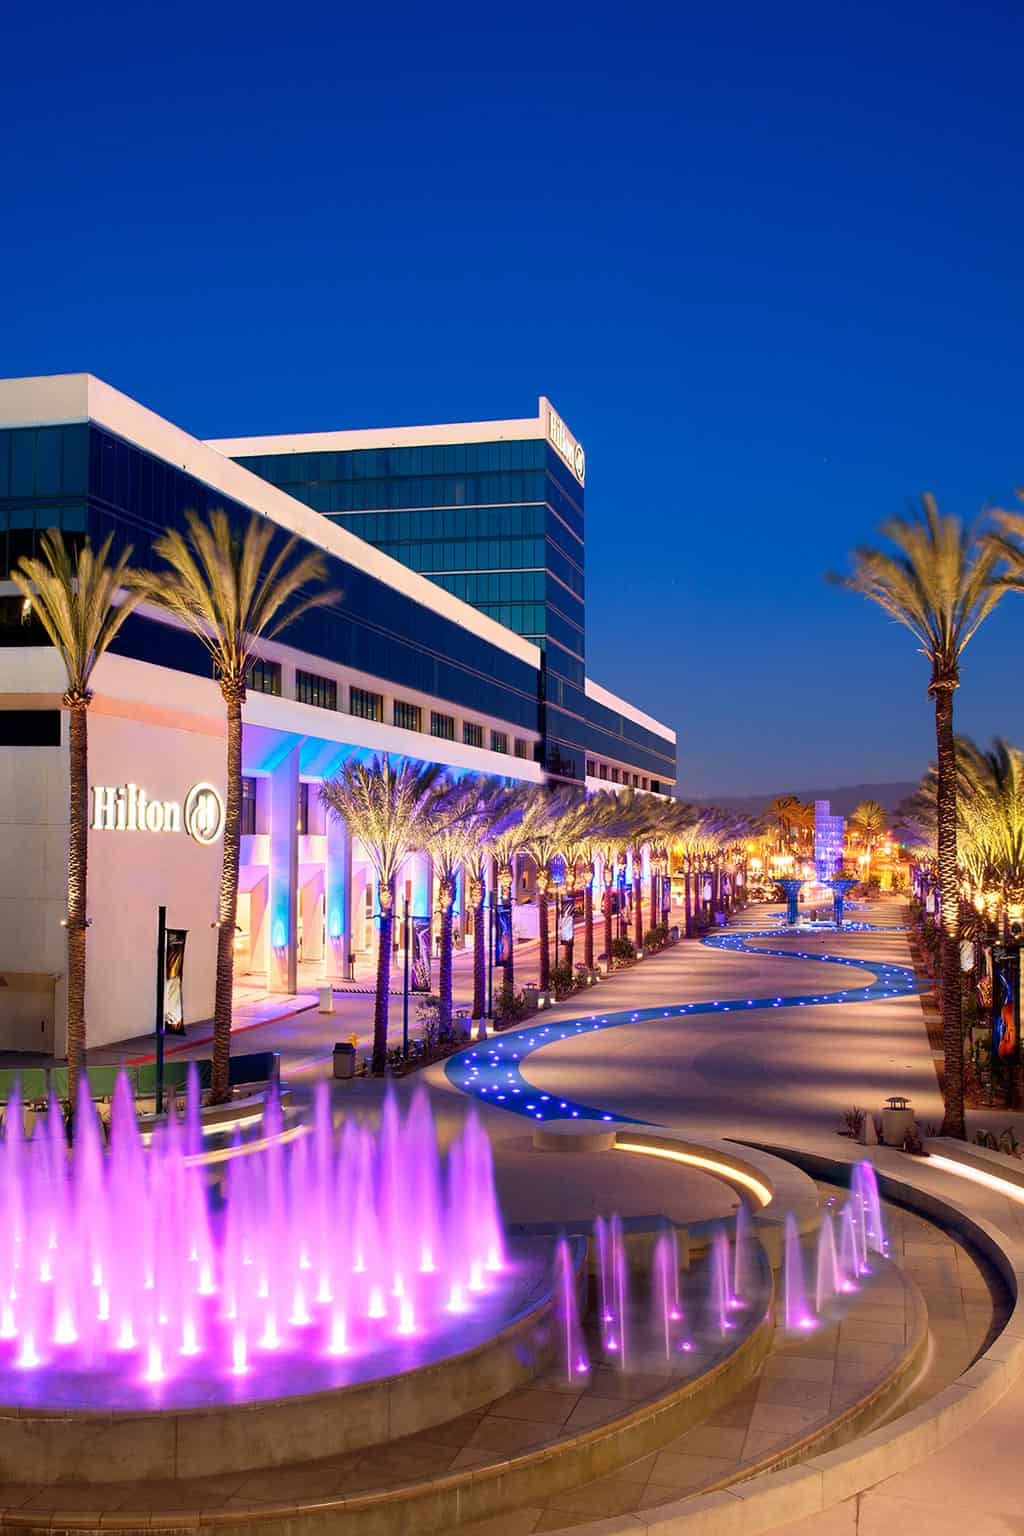 The Anaheim Hilton Hotel at Night with the new fountain in the foreground.